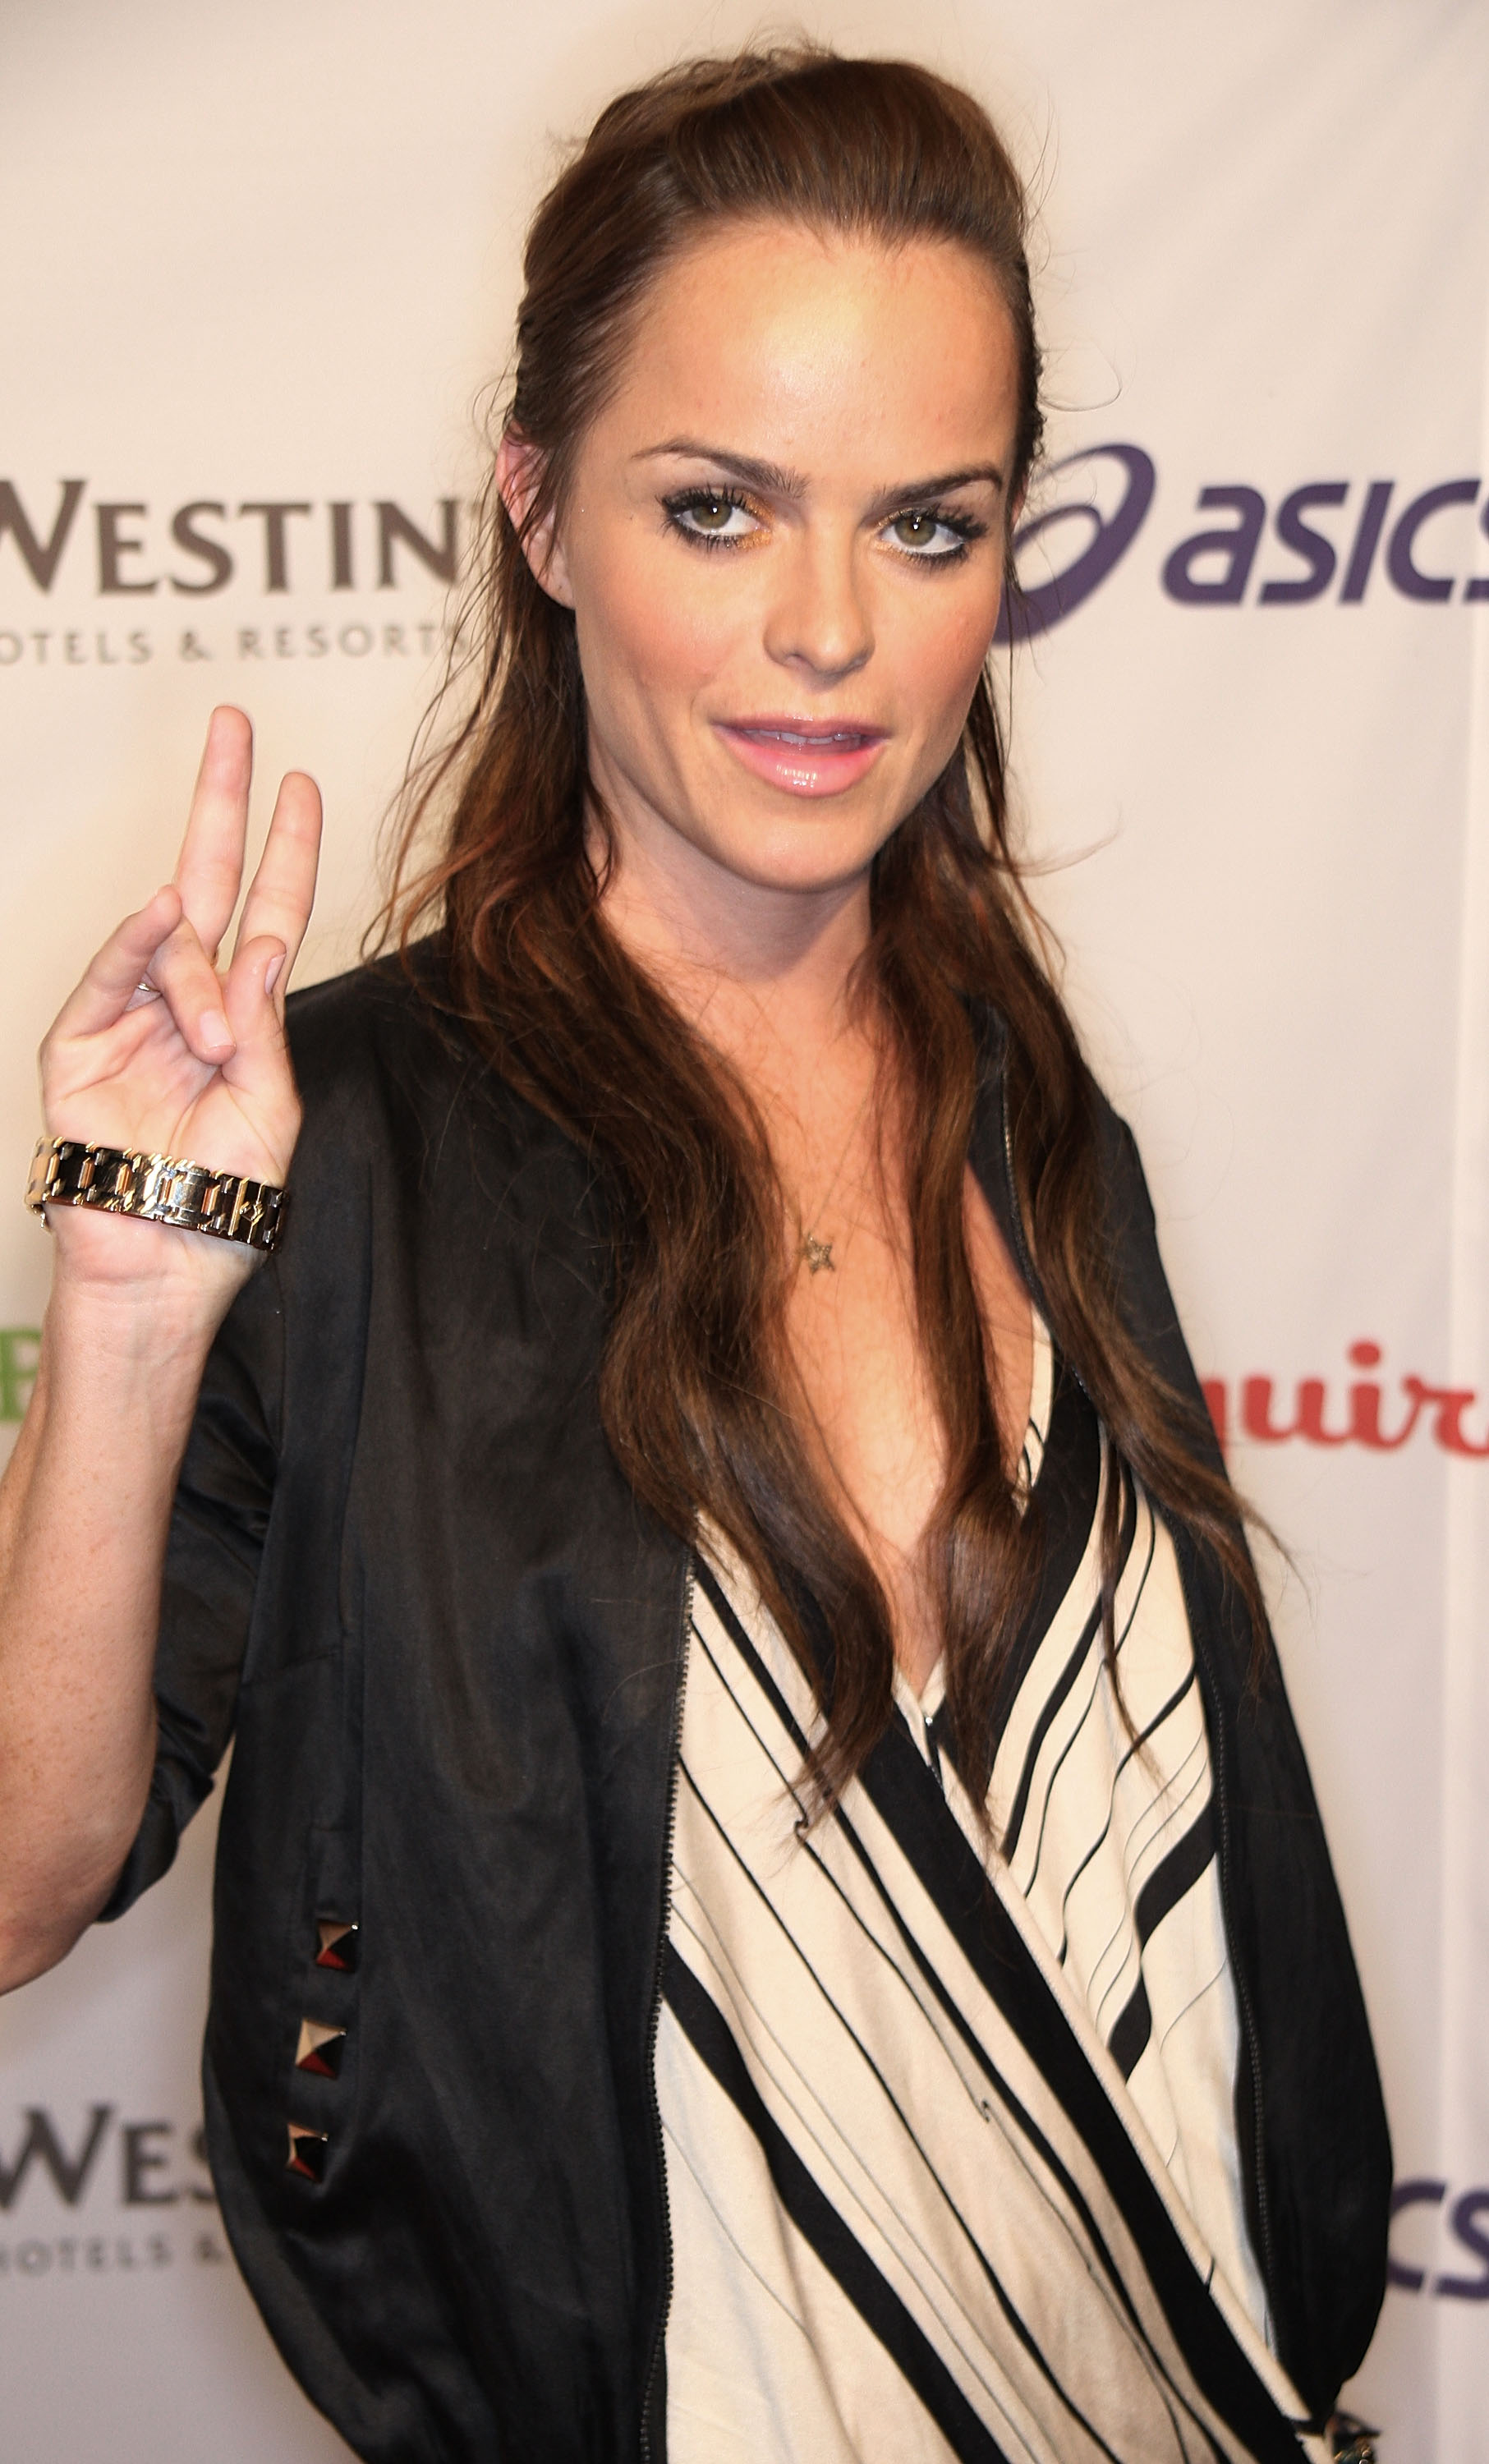 26781_Celebutopia-Taryn_Manning-Esquire_House_Hollywood_Hills_Rock_The_Vote_party-01_122_134lo.jpg